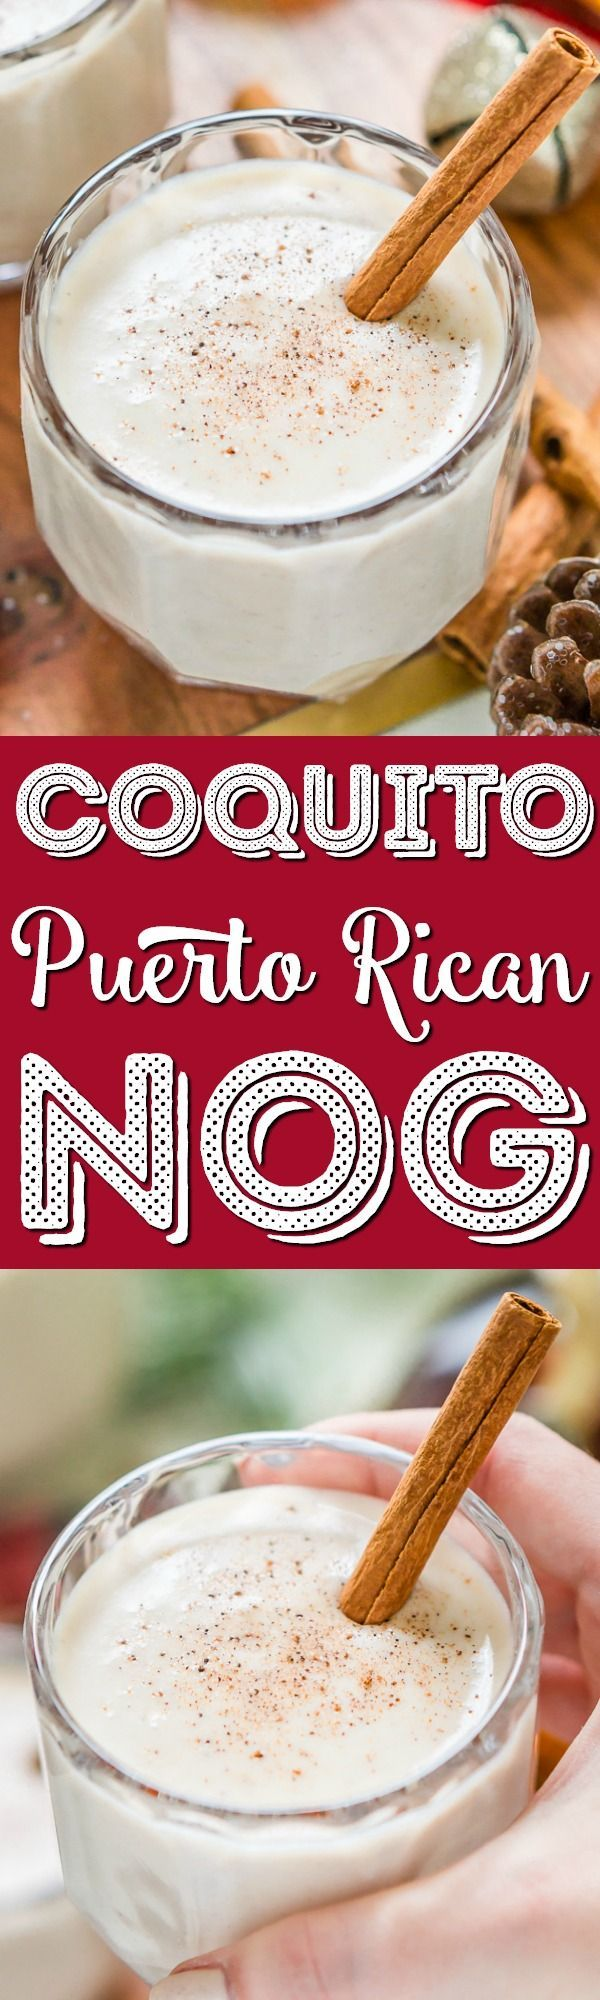 This Coquito recipe is a creamy and rich coconut-based Puerto Rican cocktail similar to an eggnog and a deliciously thick holiday drink loaded with spices and rum! via @sugarandsoulco